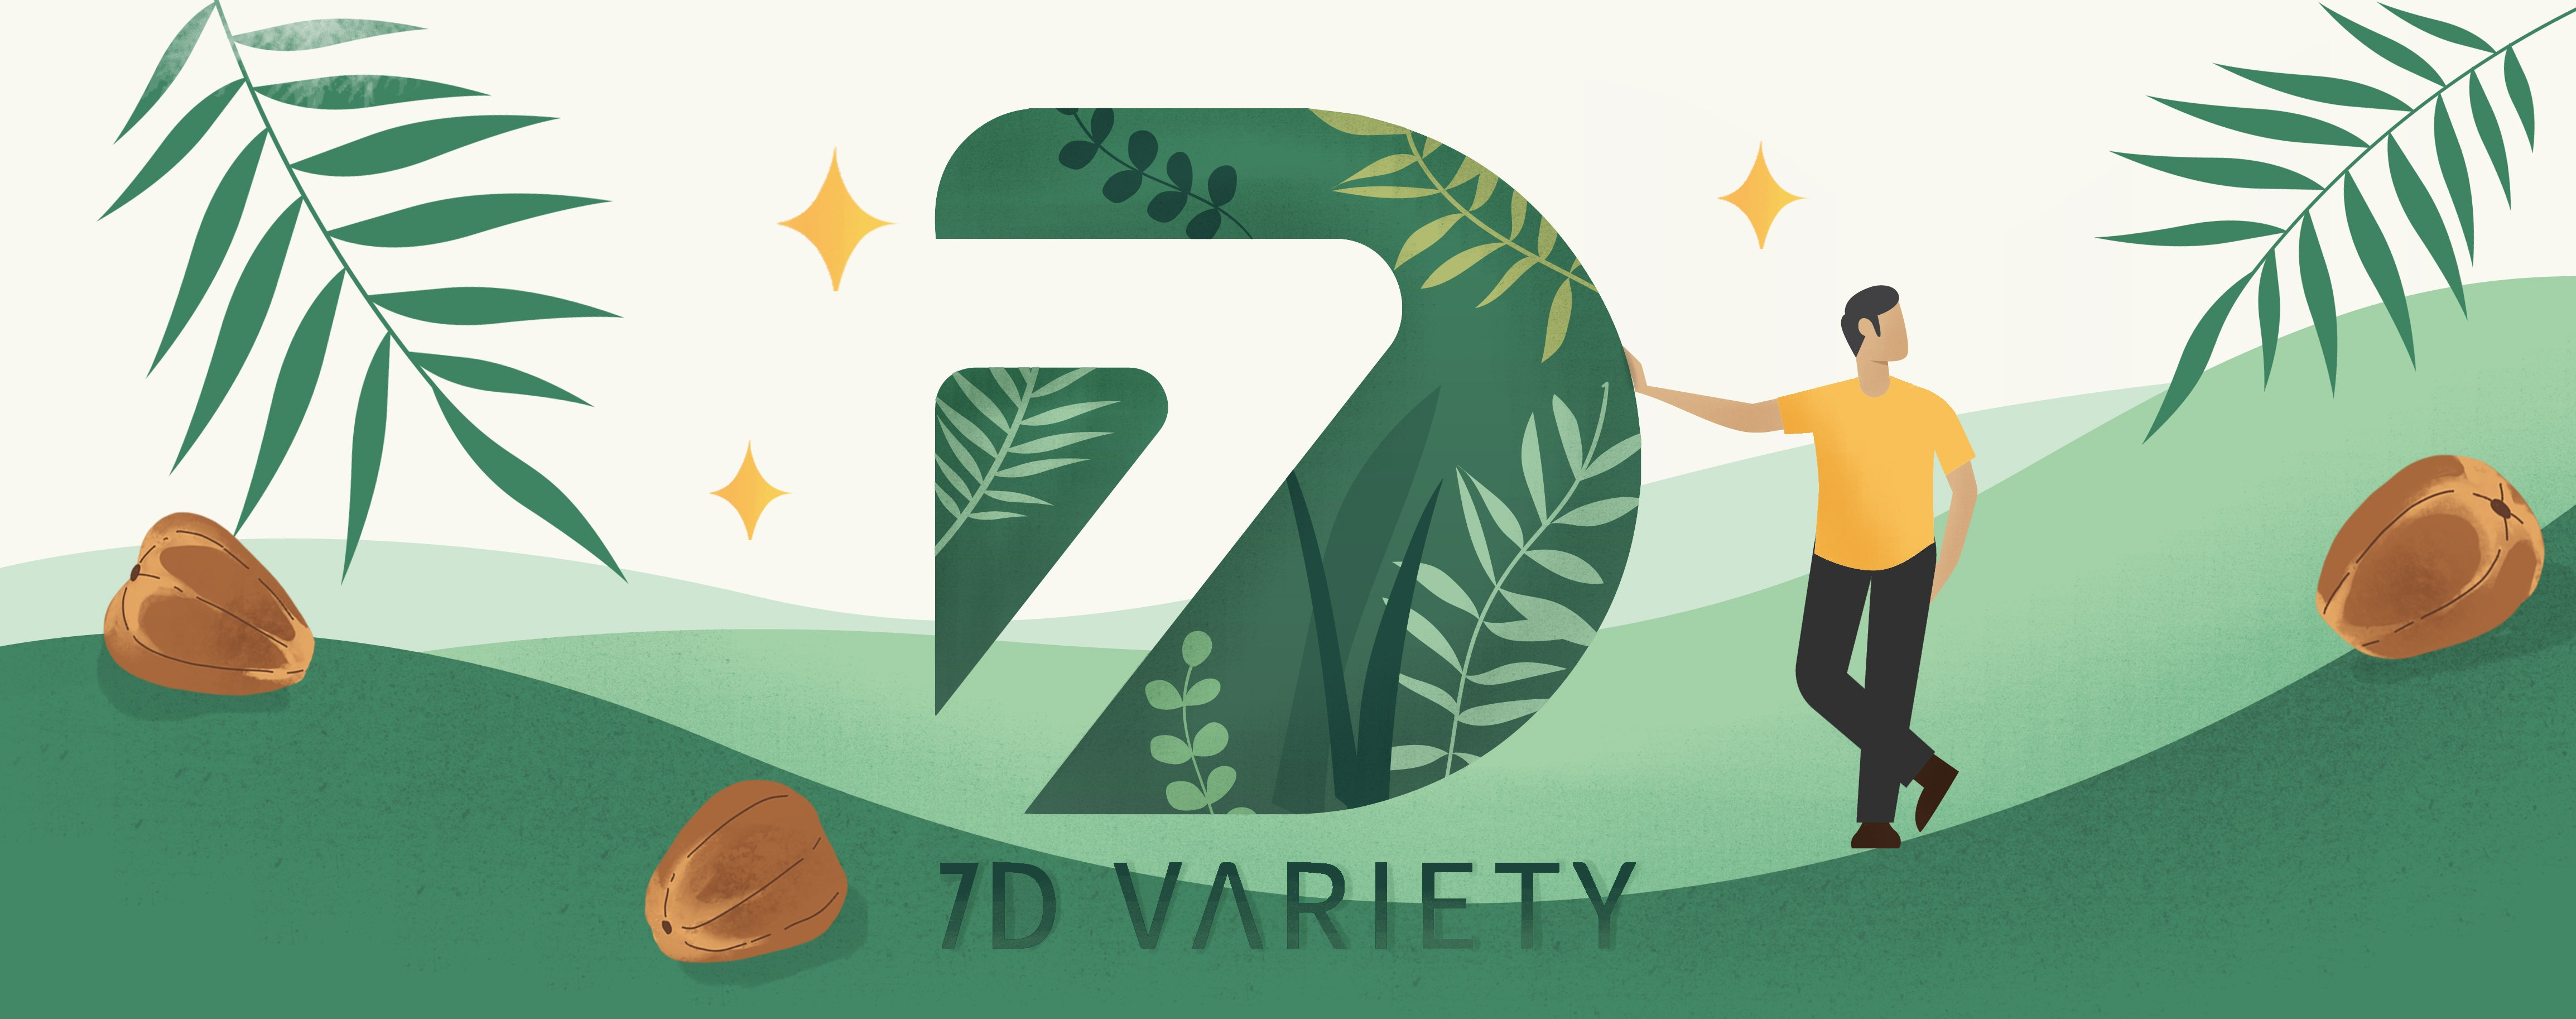 About 7D VARIETY